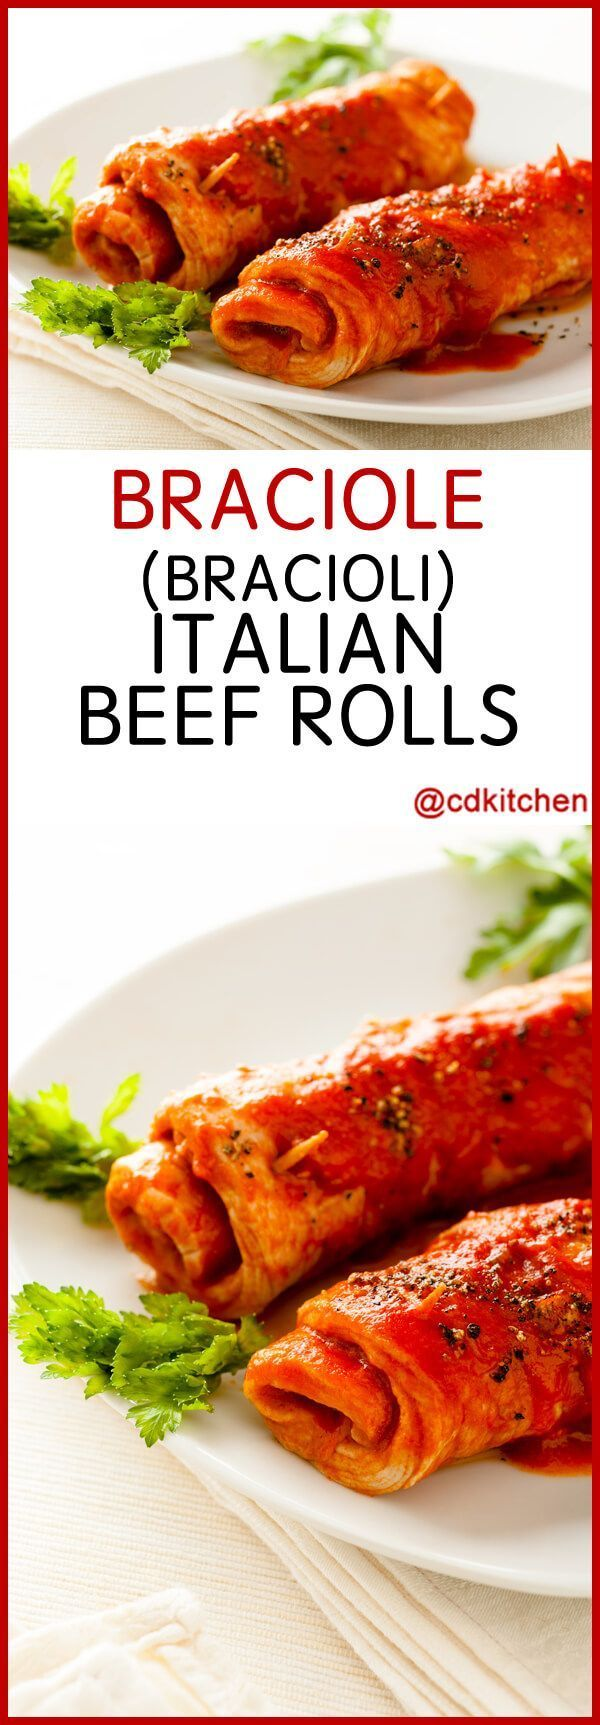 Pasta usually gets all the attention in Italian cooking, so change it up and give the spotlight to some braciole. They're yummy beef rolls stuffed with raisins, cheeses, and herbs, browned and simmered in a homemade marinara sauce.  | CDKitchen.com